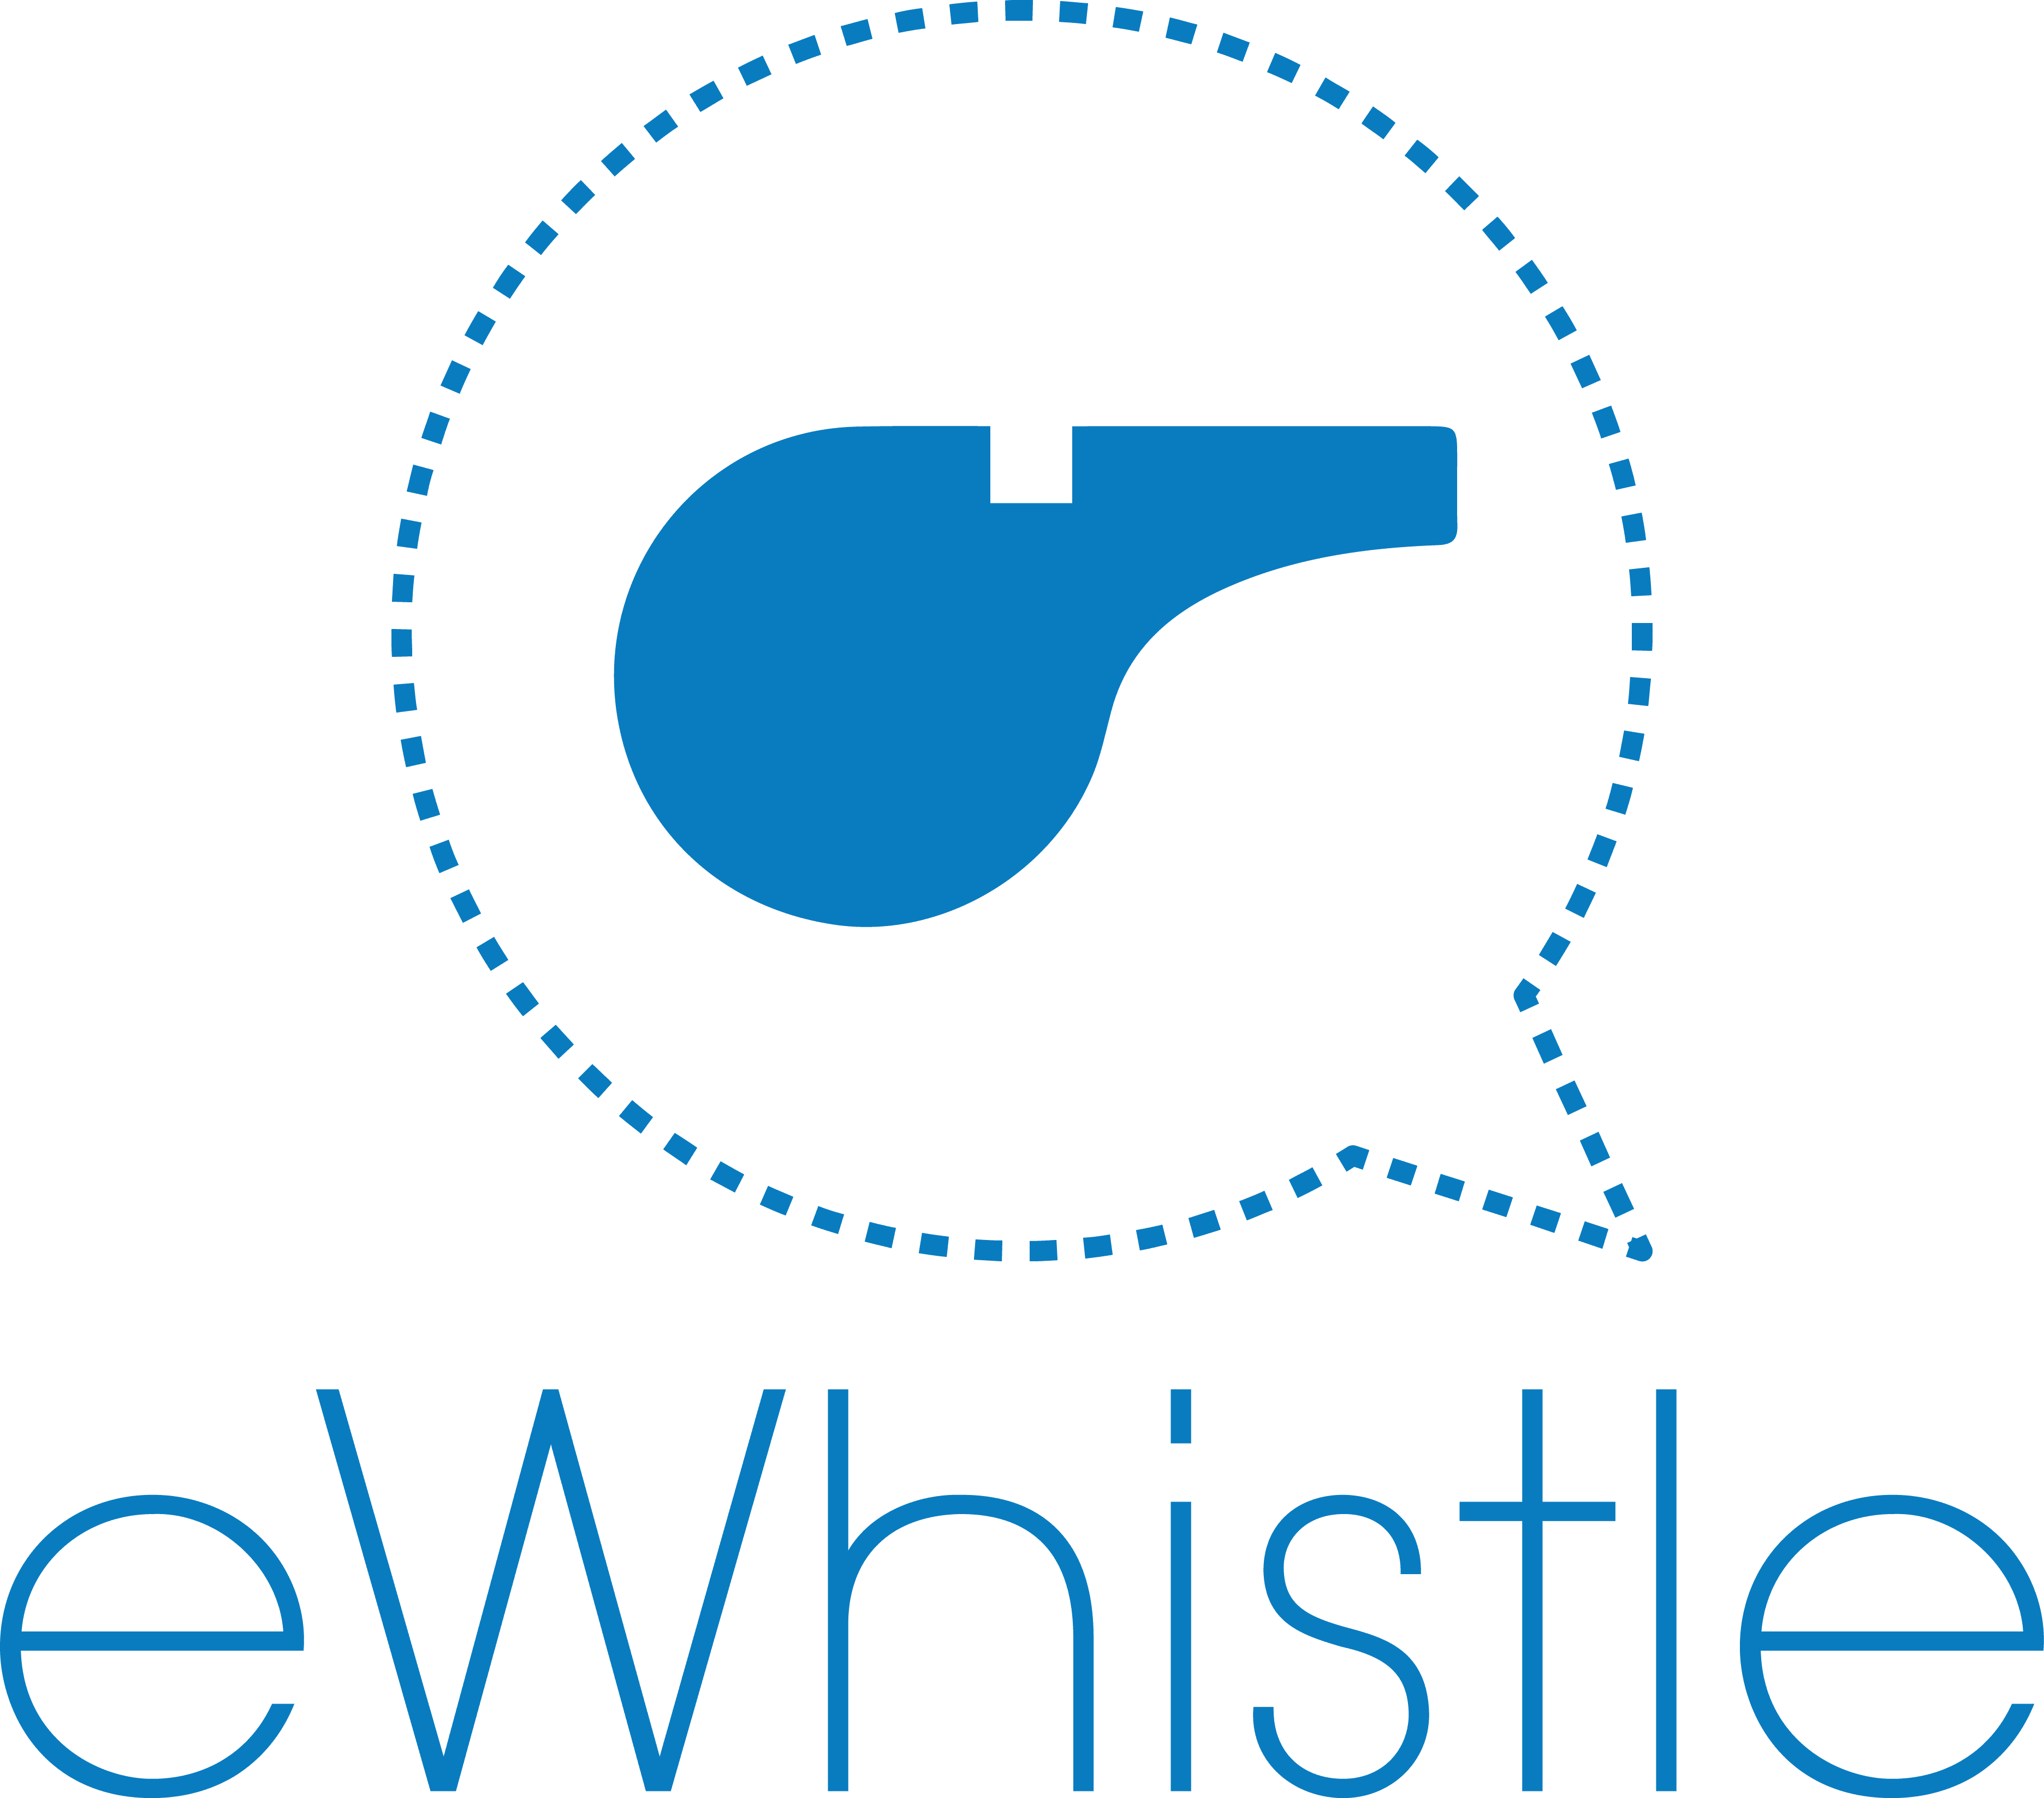 eWhistle Whistleblowing software by ProComp